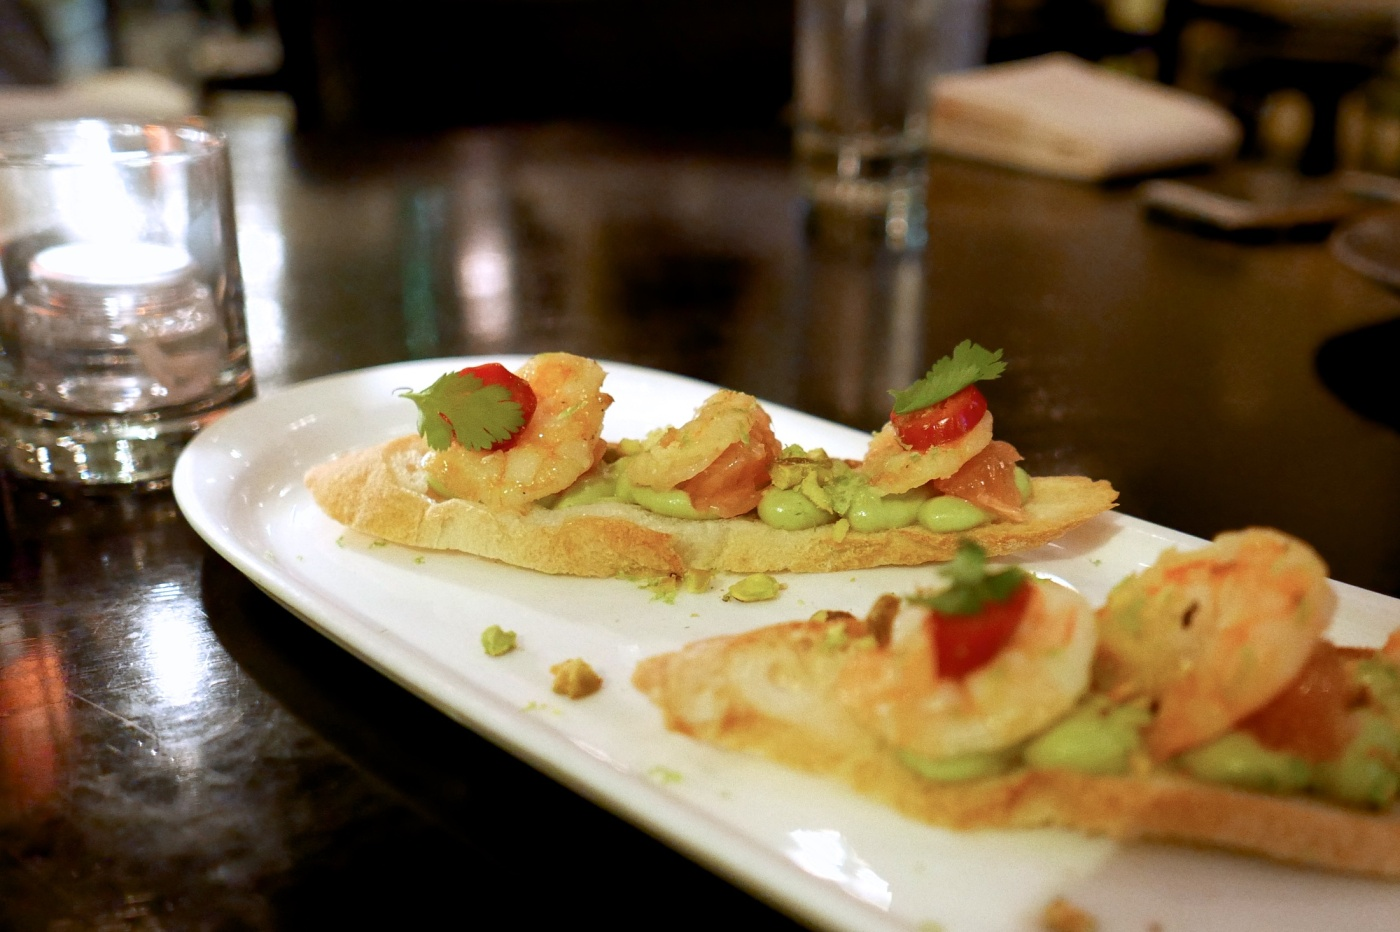 Shrimp Bruschetta, avocado, toasted pistachio, grapefruit, cilantro ($11)